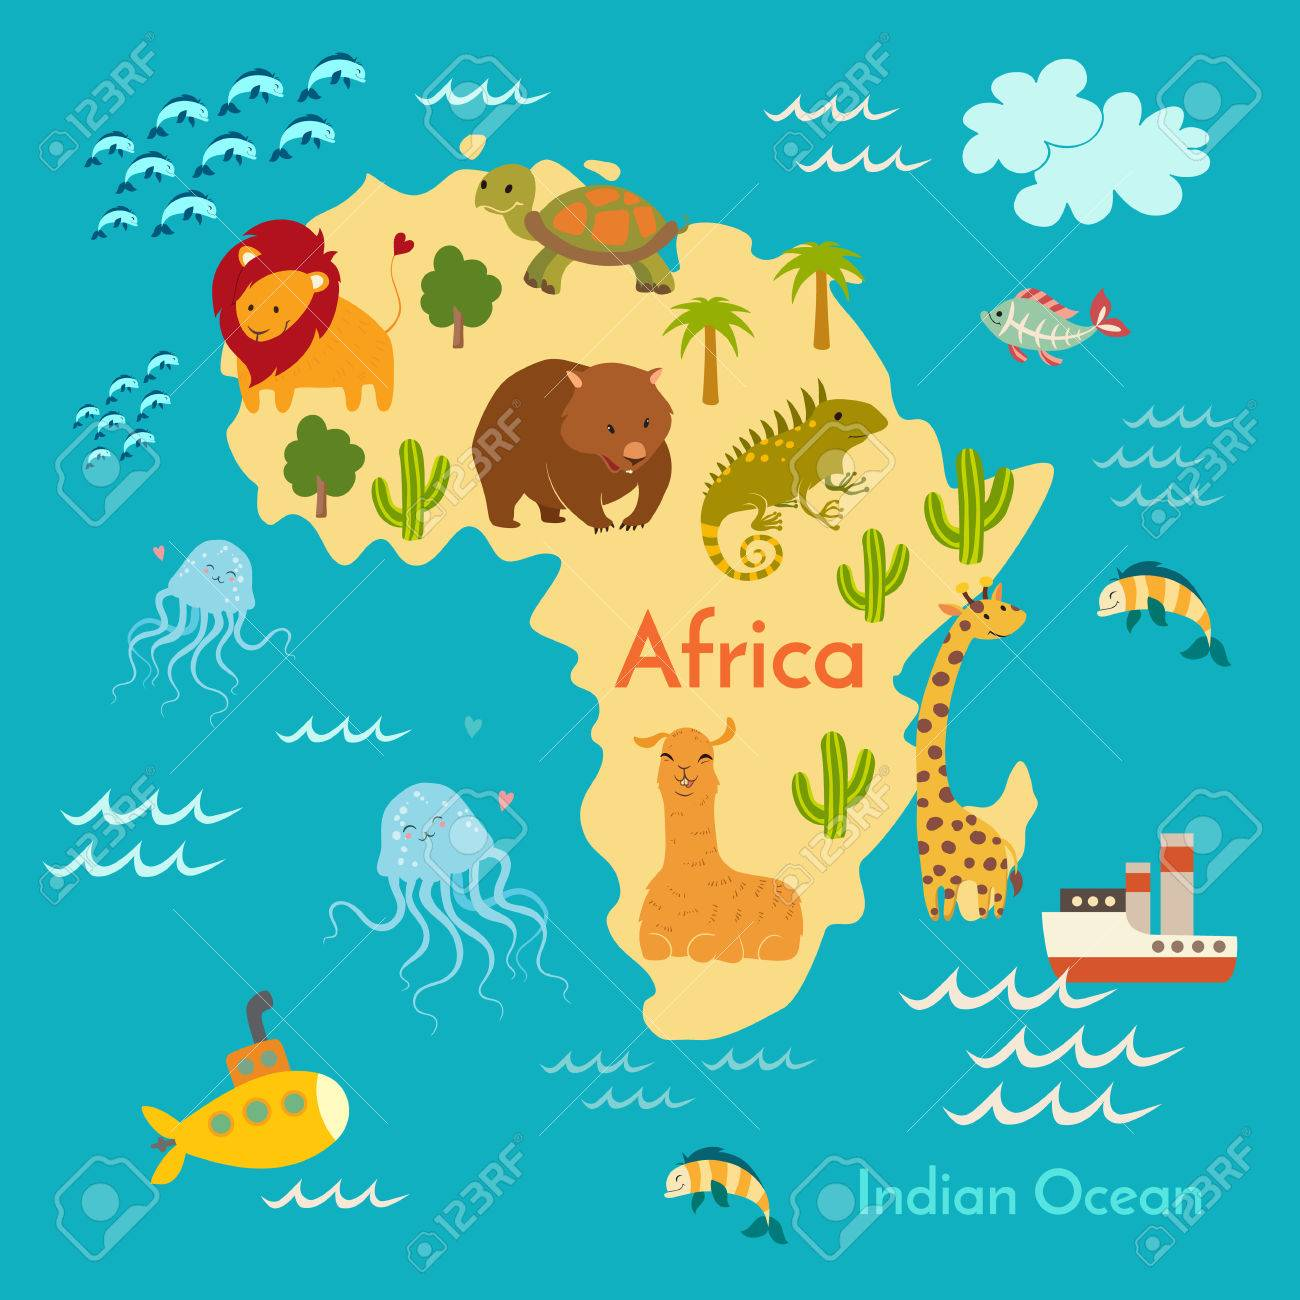 Animals world map africa vector illustration preschool baby animals world map africa vector illustration preschool baby continents oceans gumiabroncs Image collections